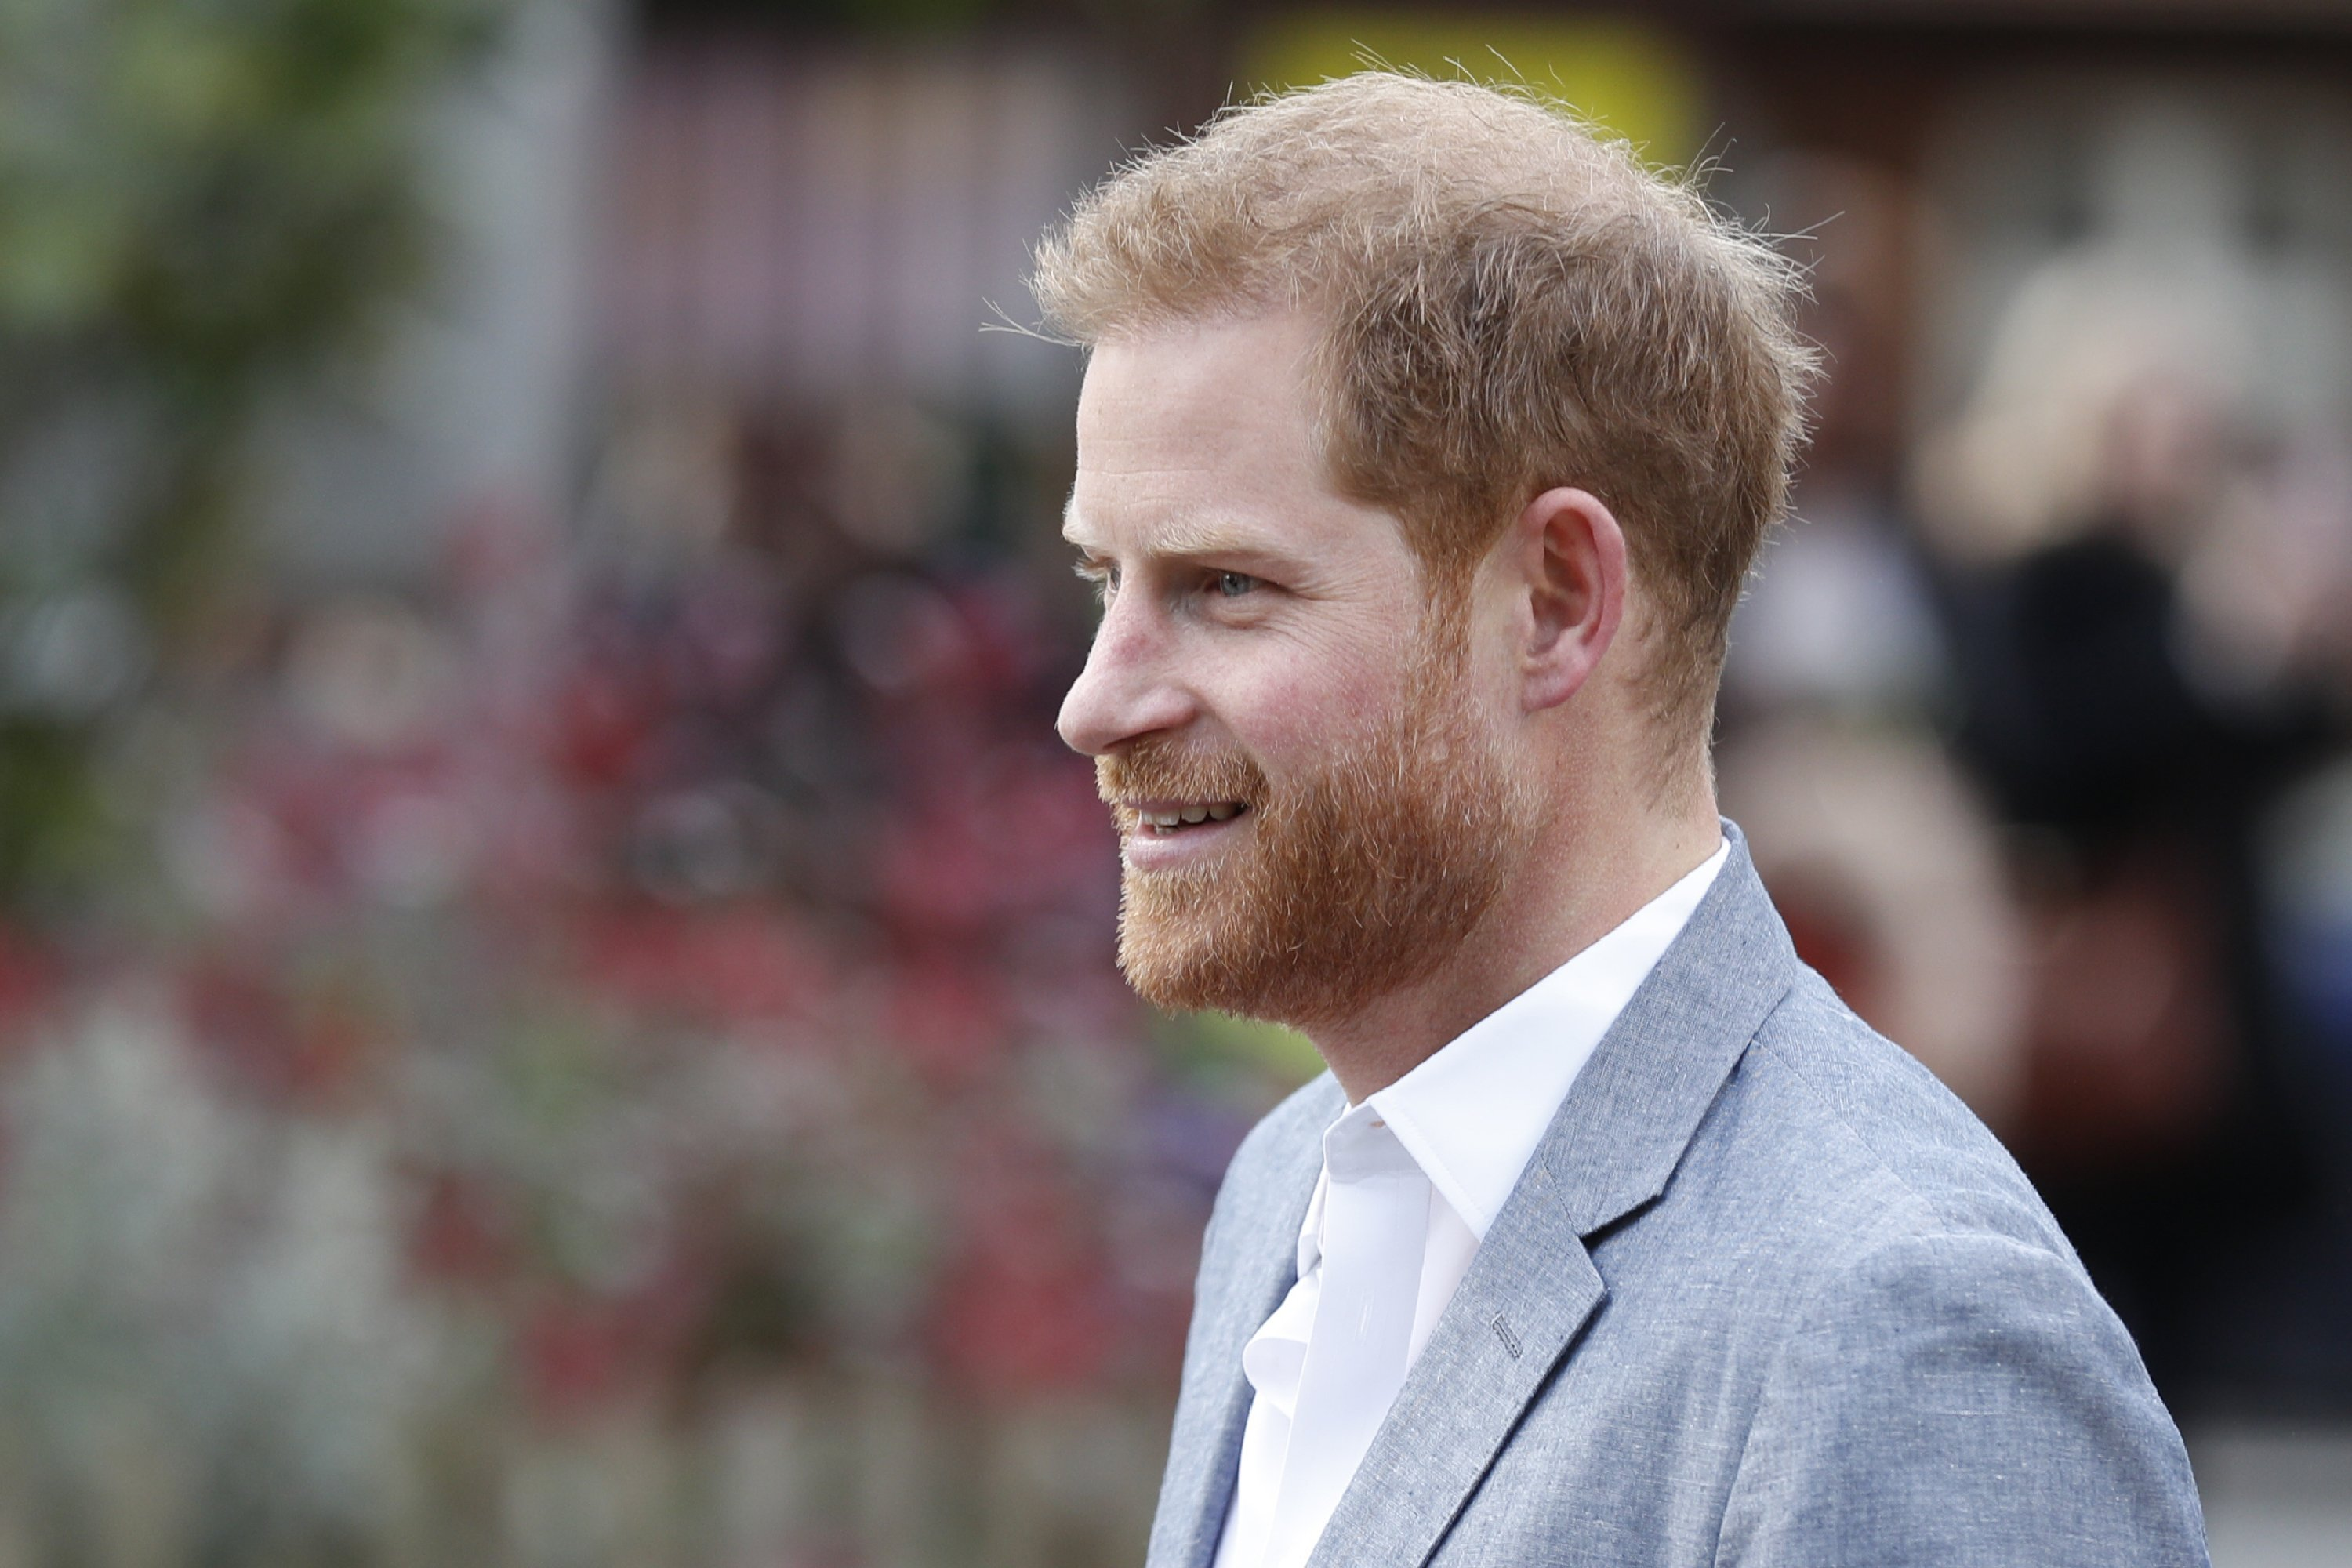 Britain's Prince Harry, Duke of Sussex visits YMCA South Ealing, to learn more about their work on mental health and see how they are providing support to young people in the area, on April 3, 2019 in London, England. | Photo: GettyImages